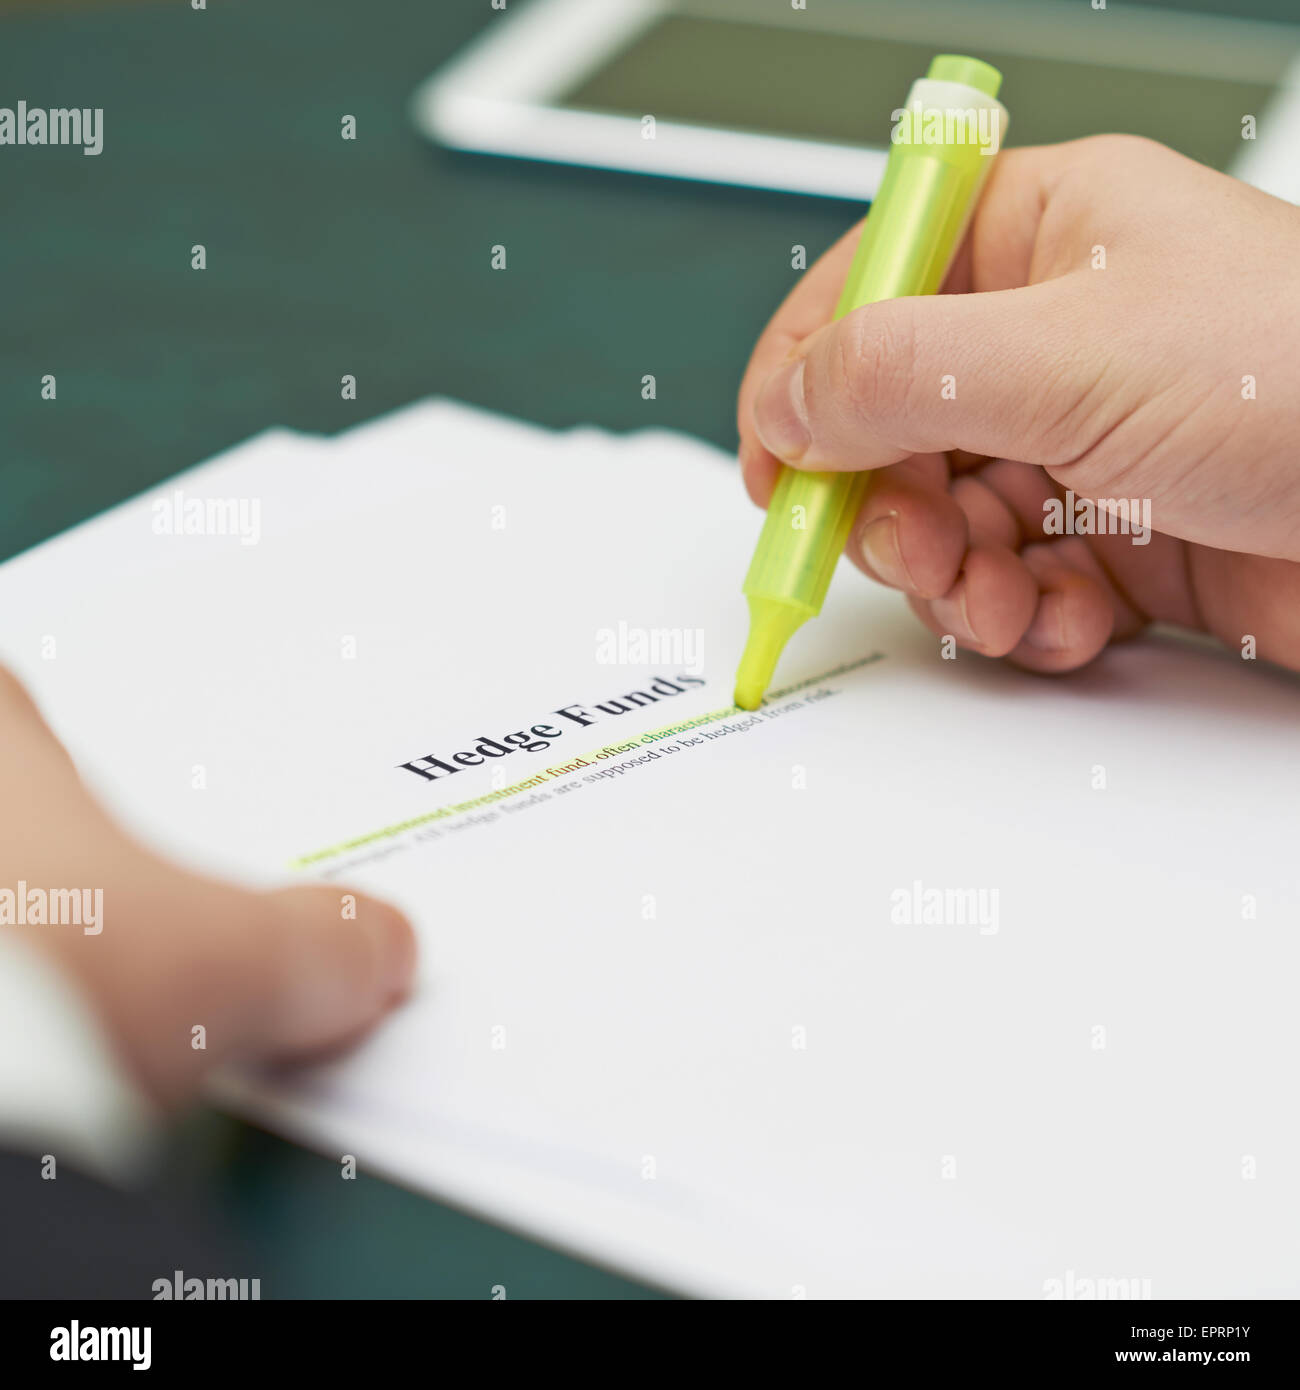 Marking words in a hedge funds definition - Stock Image